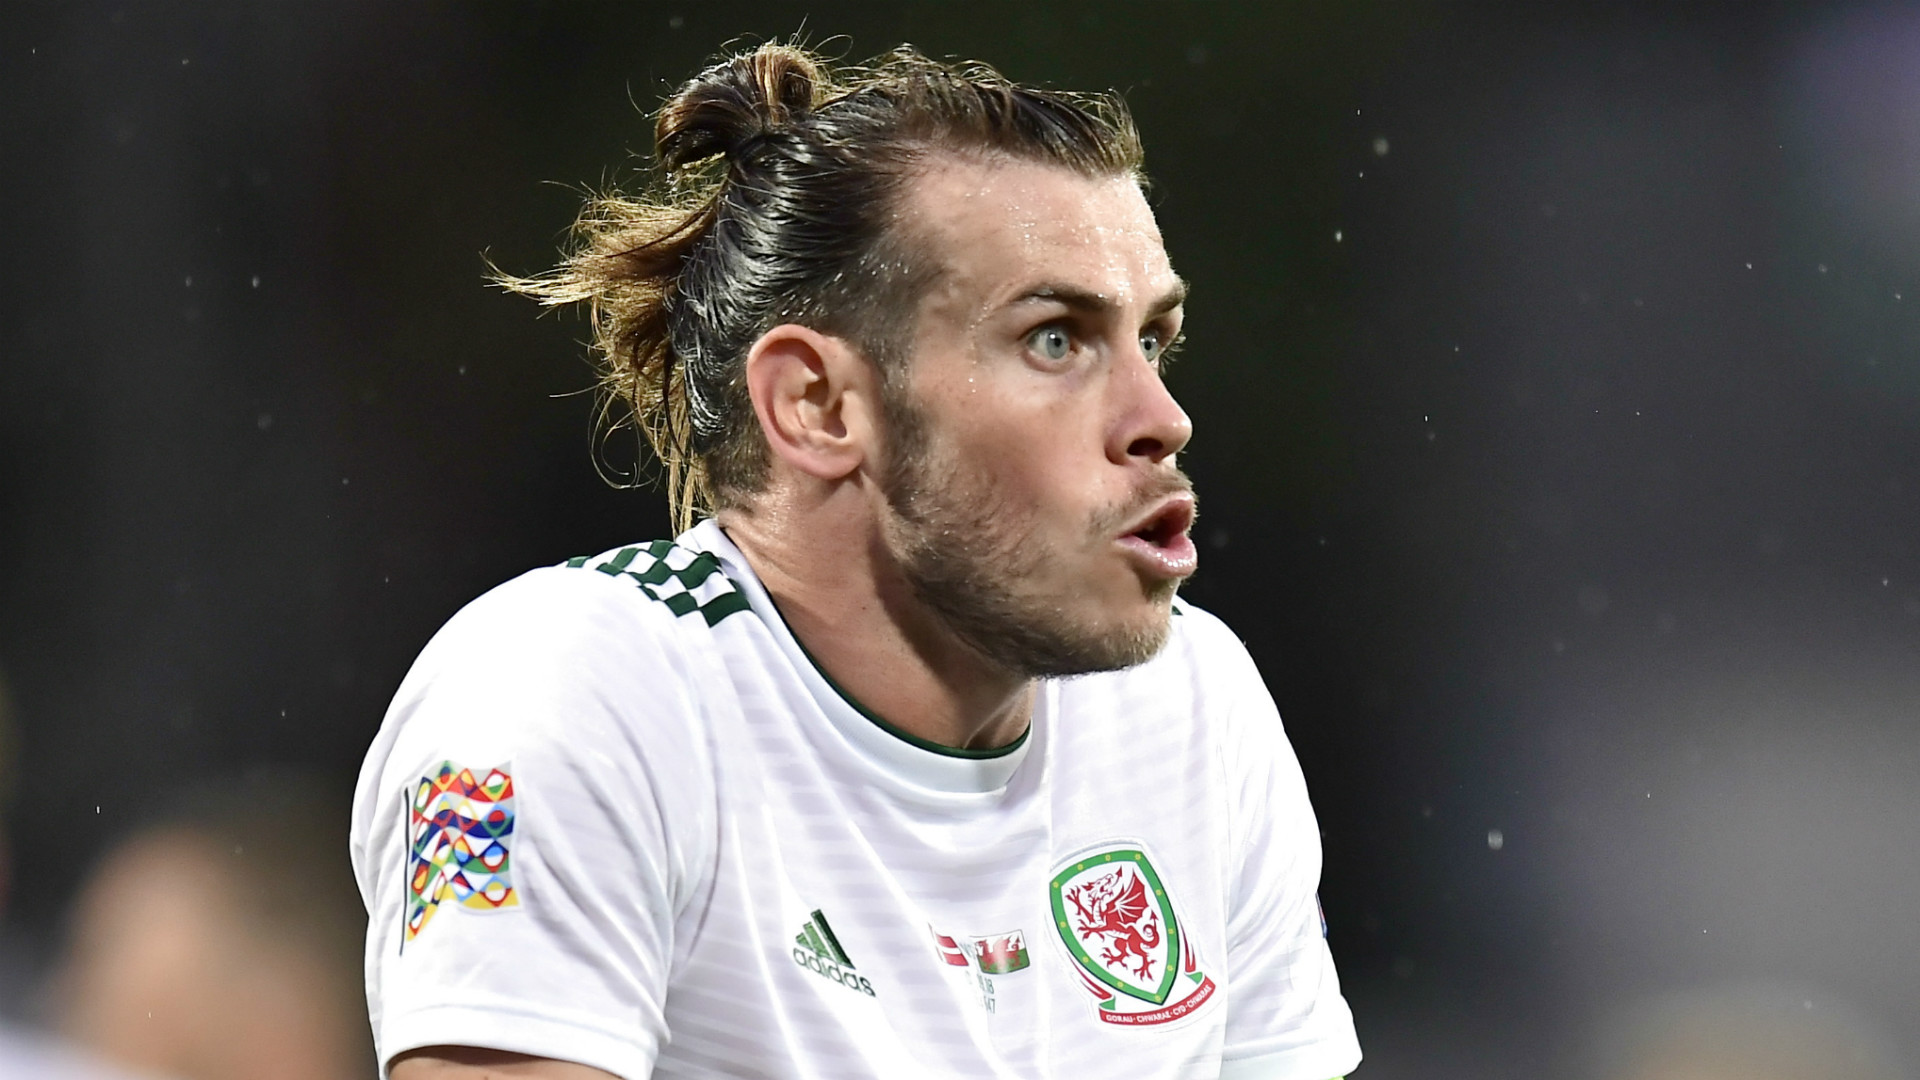 'If Liverpool can afford Bale they should get him' – Real Madrid outcast told to 'reinvent himself' at Anfield